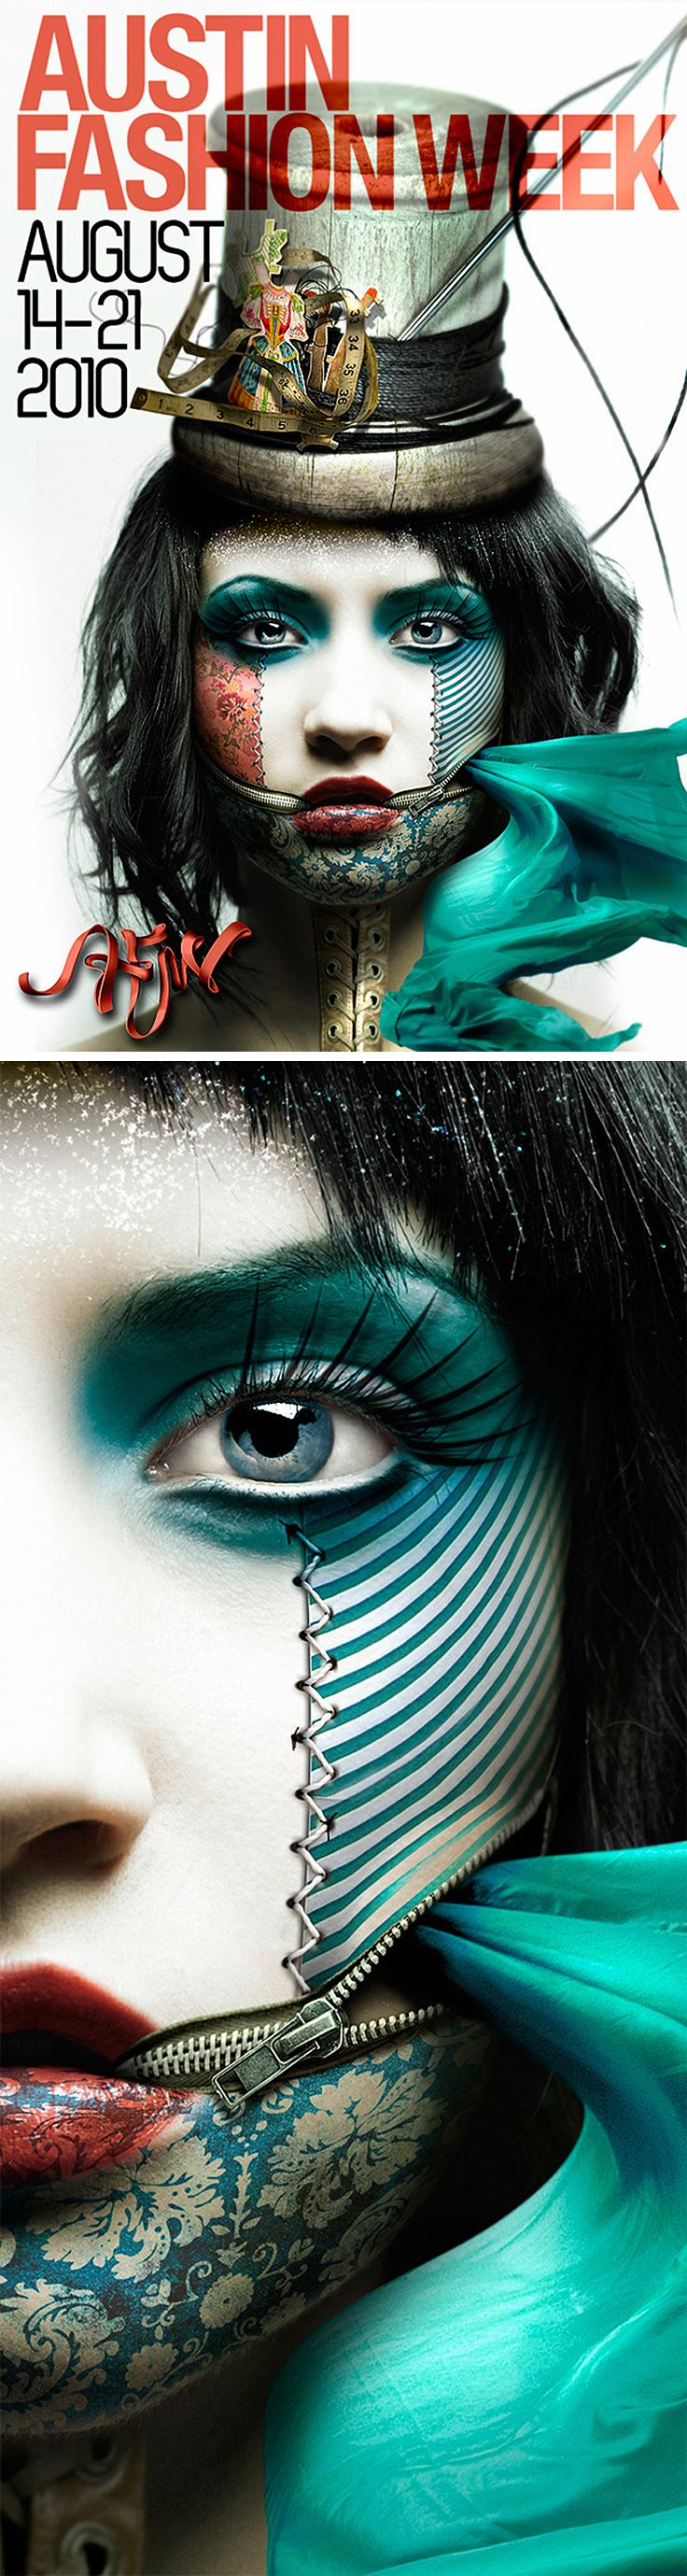 Poster design for Austin Fashion Week 2010 - Gary Dorsey {surreal photo manipulation retouching}